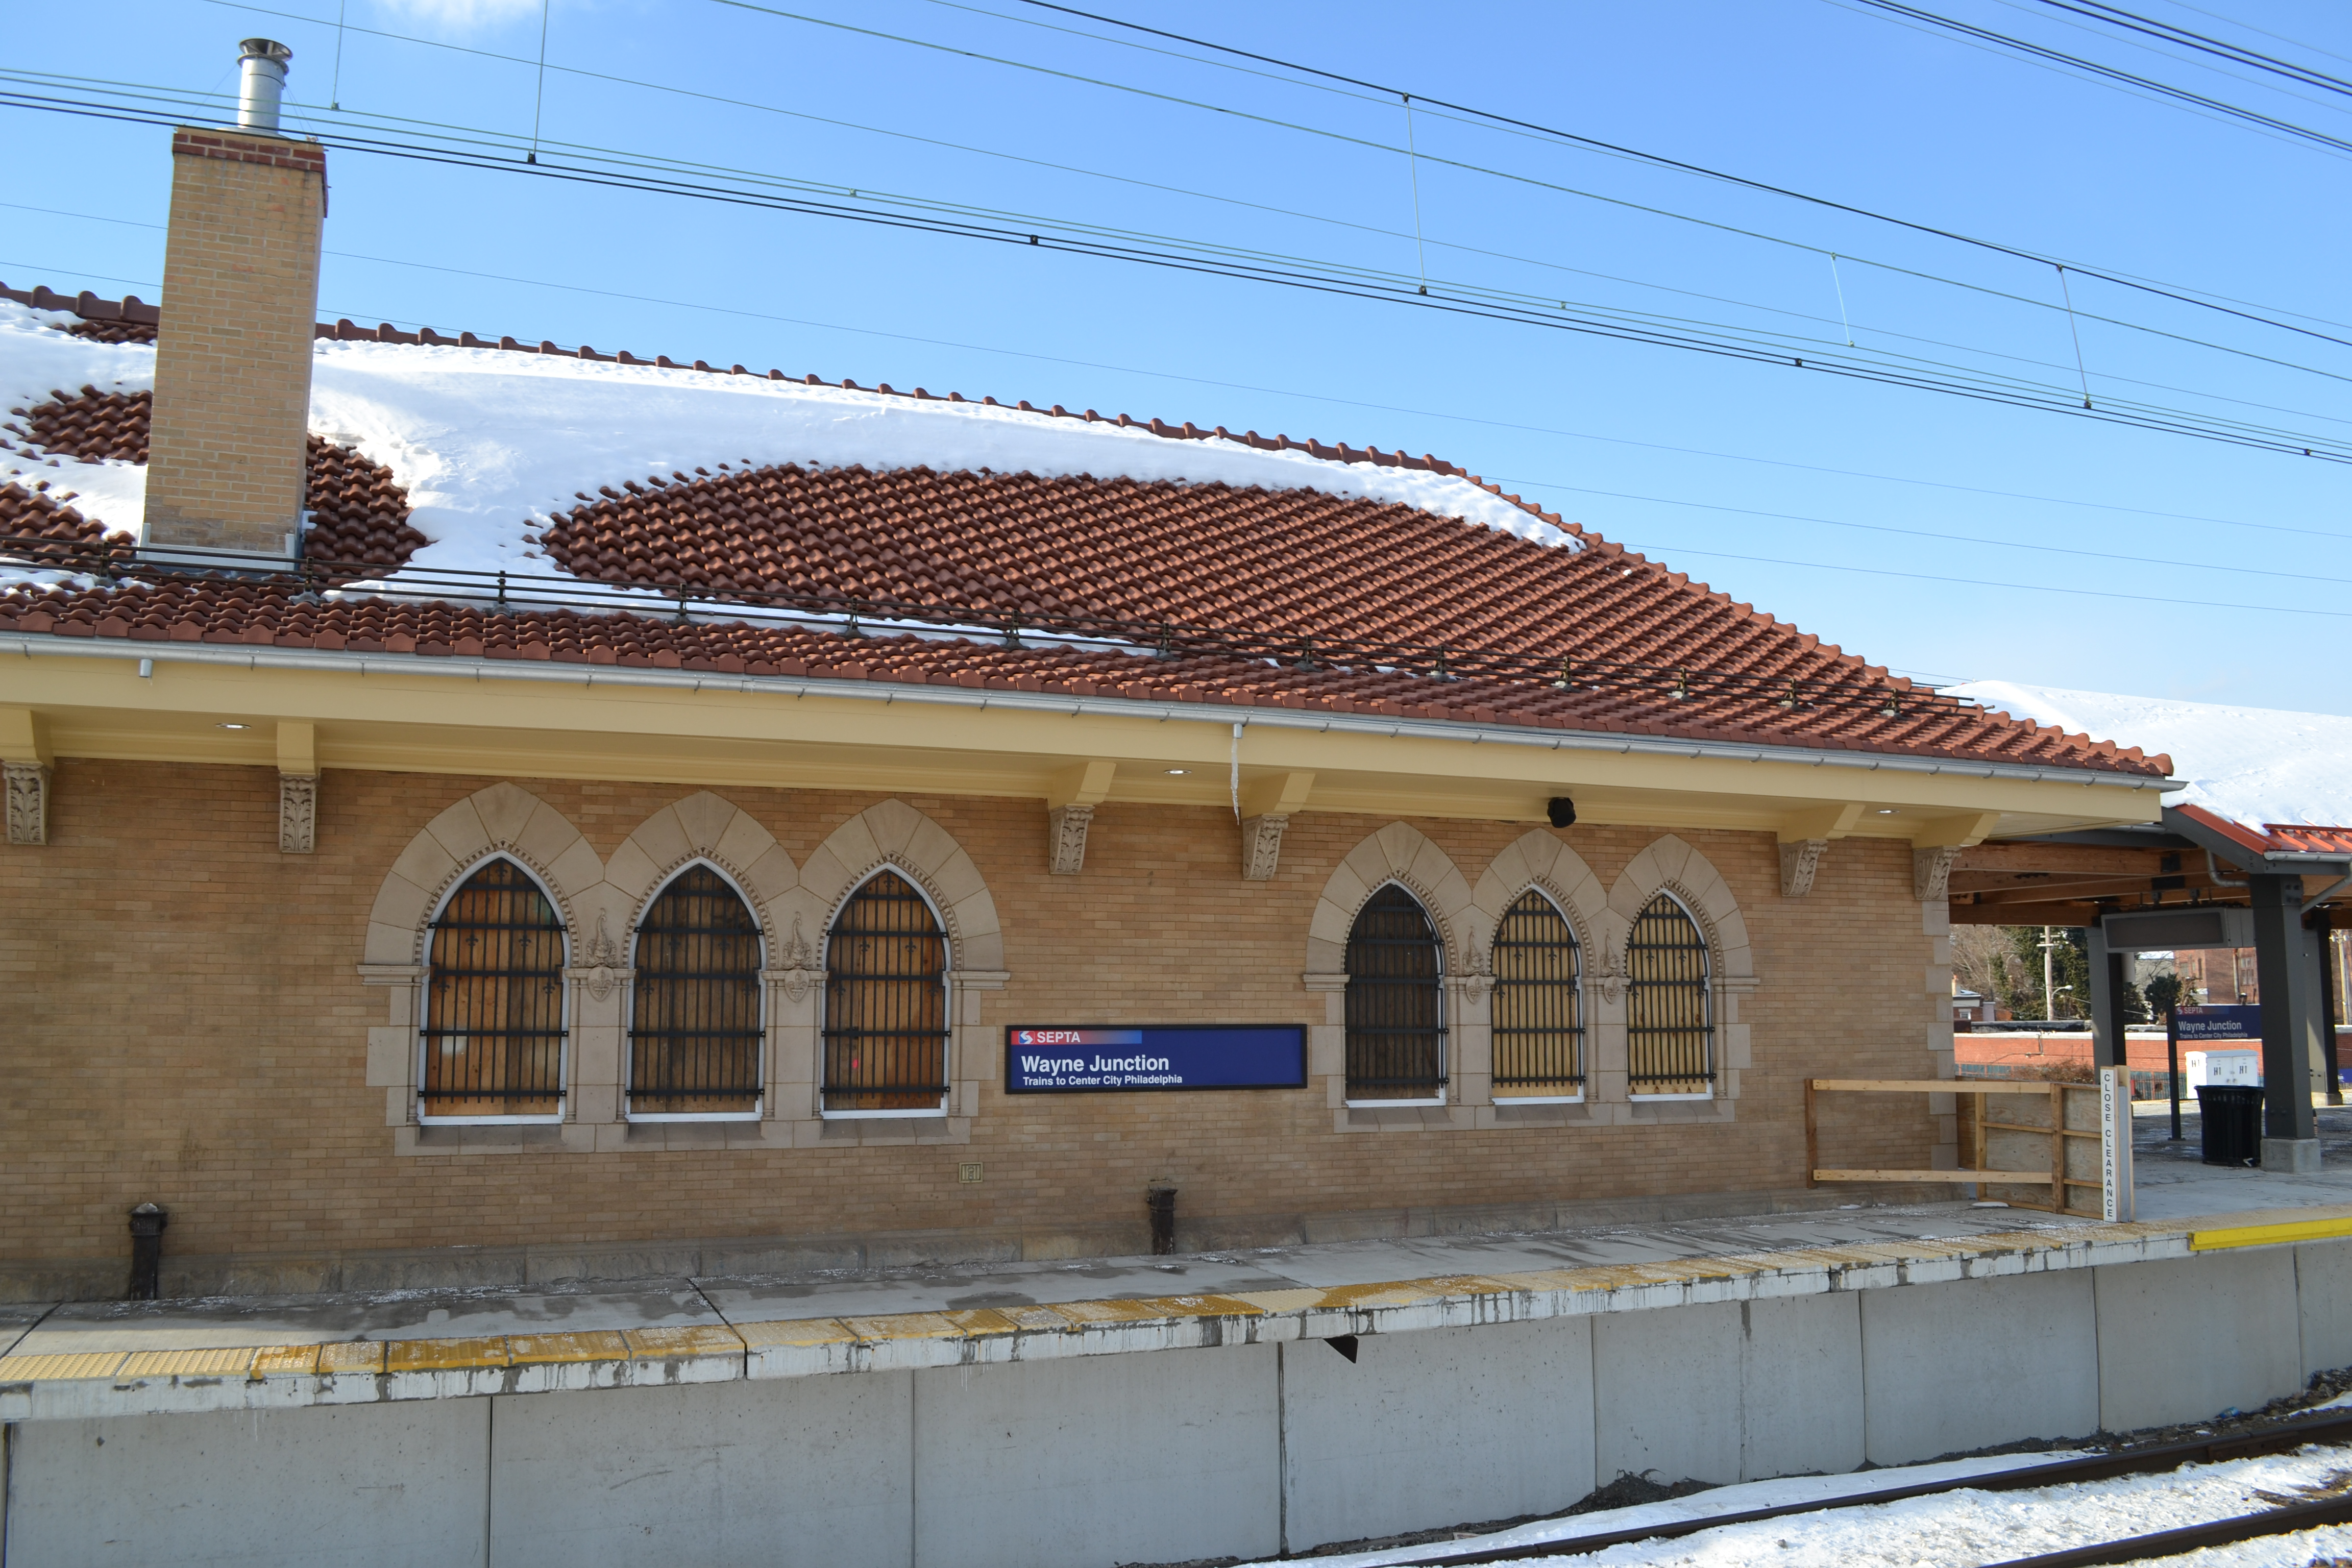 The station building is still under construction, but the roof work is complete